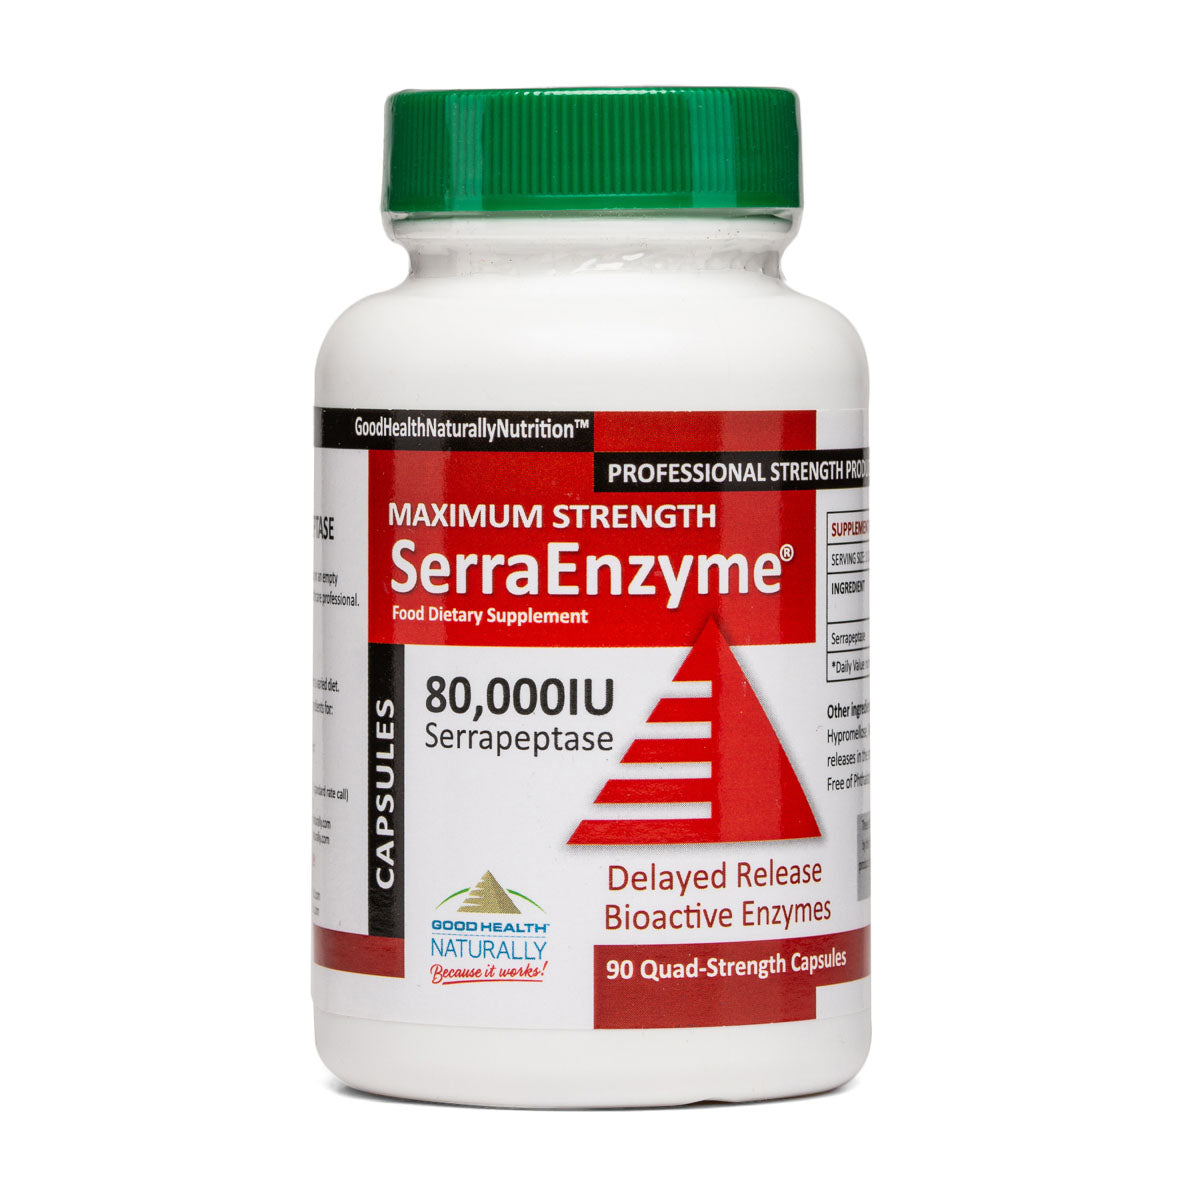 Serra Enzyme 80,000iu - 90 Delayed Release CAPS